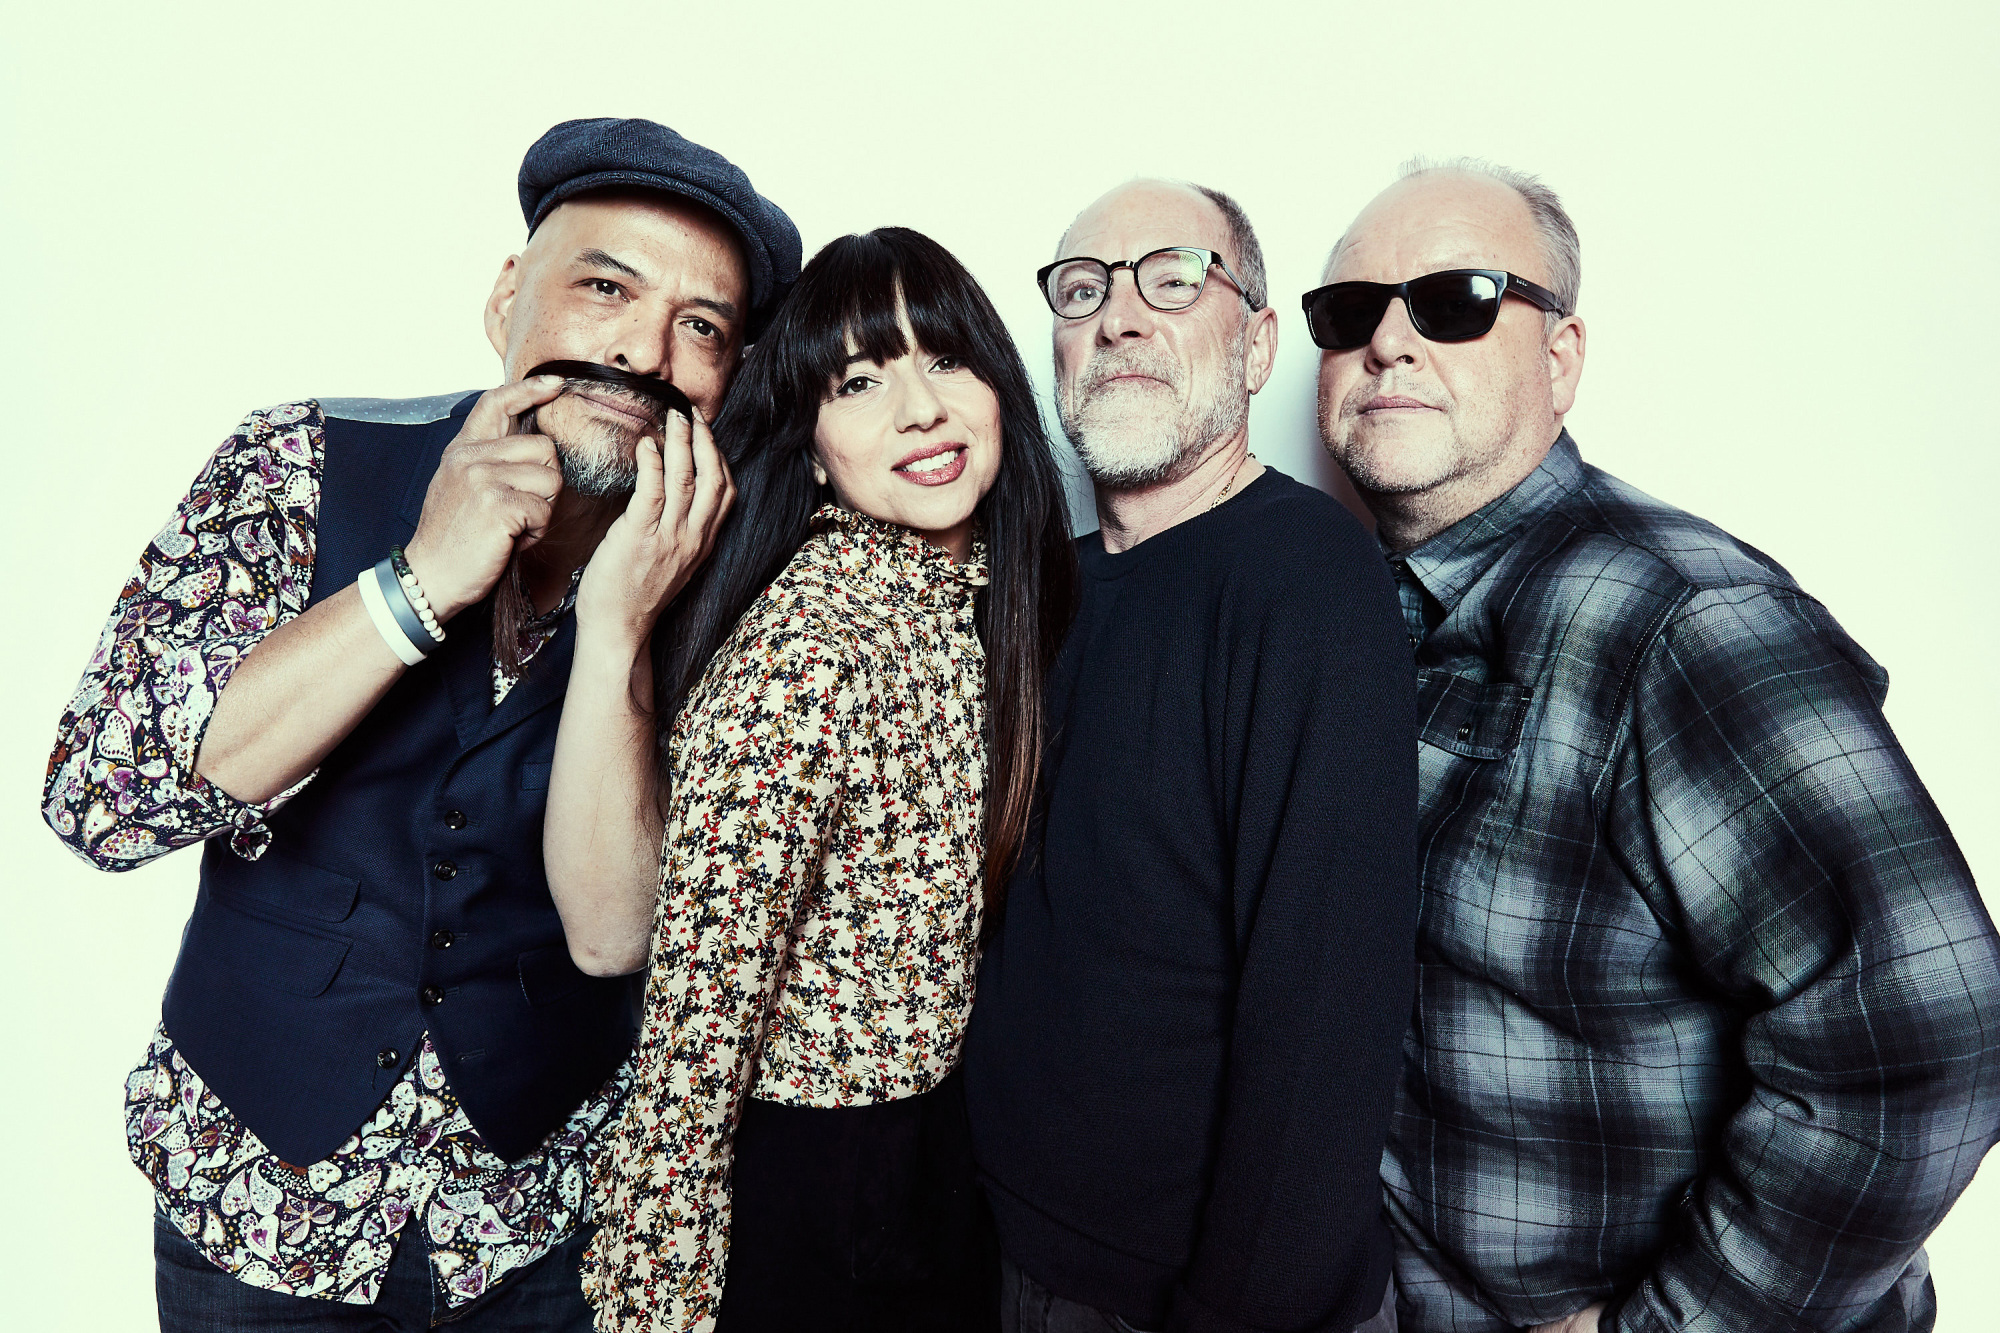 Better late than never: Pixies (from left: Joey Santiago, Paz Lenchantin, Dave Lovering and Black Francis) first visited Japan in 2004 for a set at Fuji Rock Festival, 18 years after the band was formed. | TRAVIS SHINN